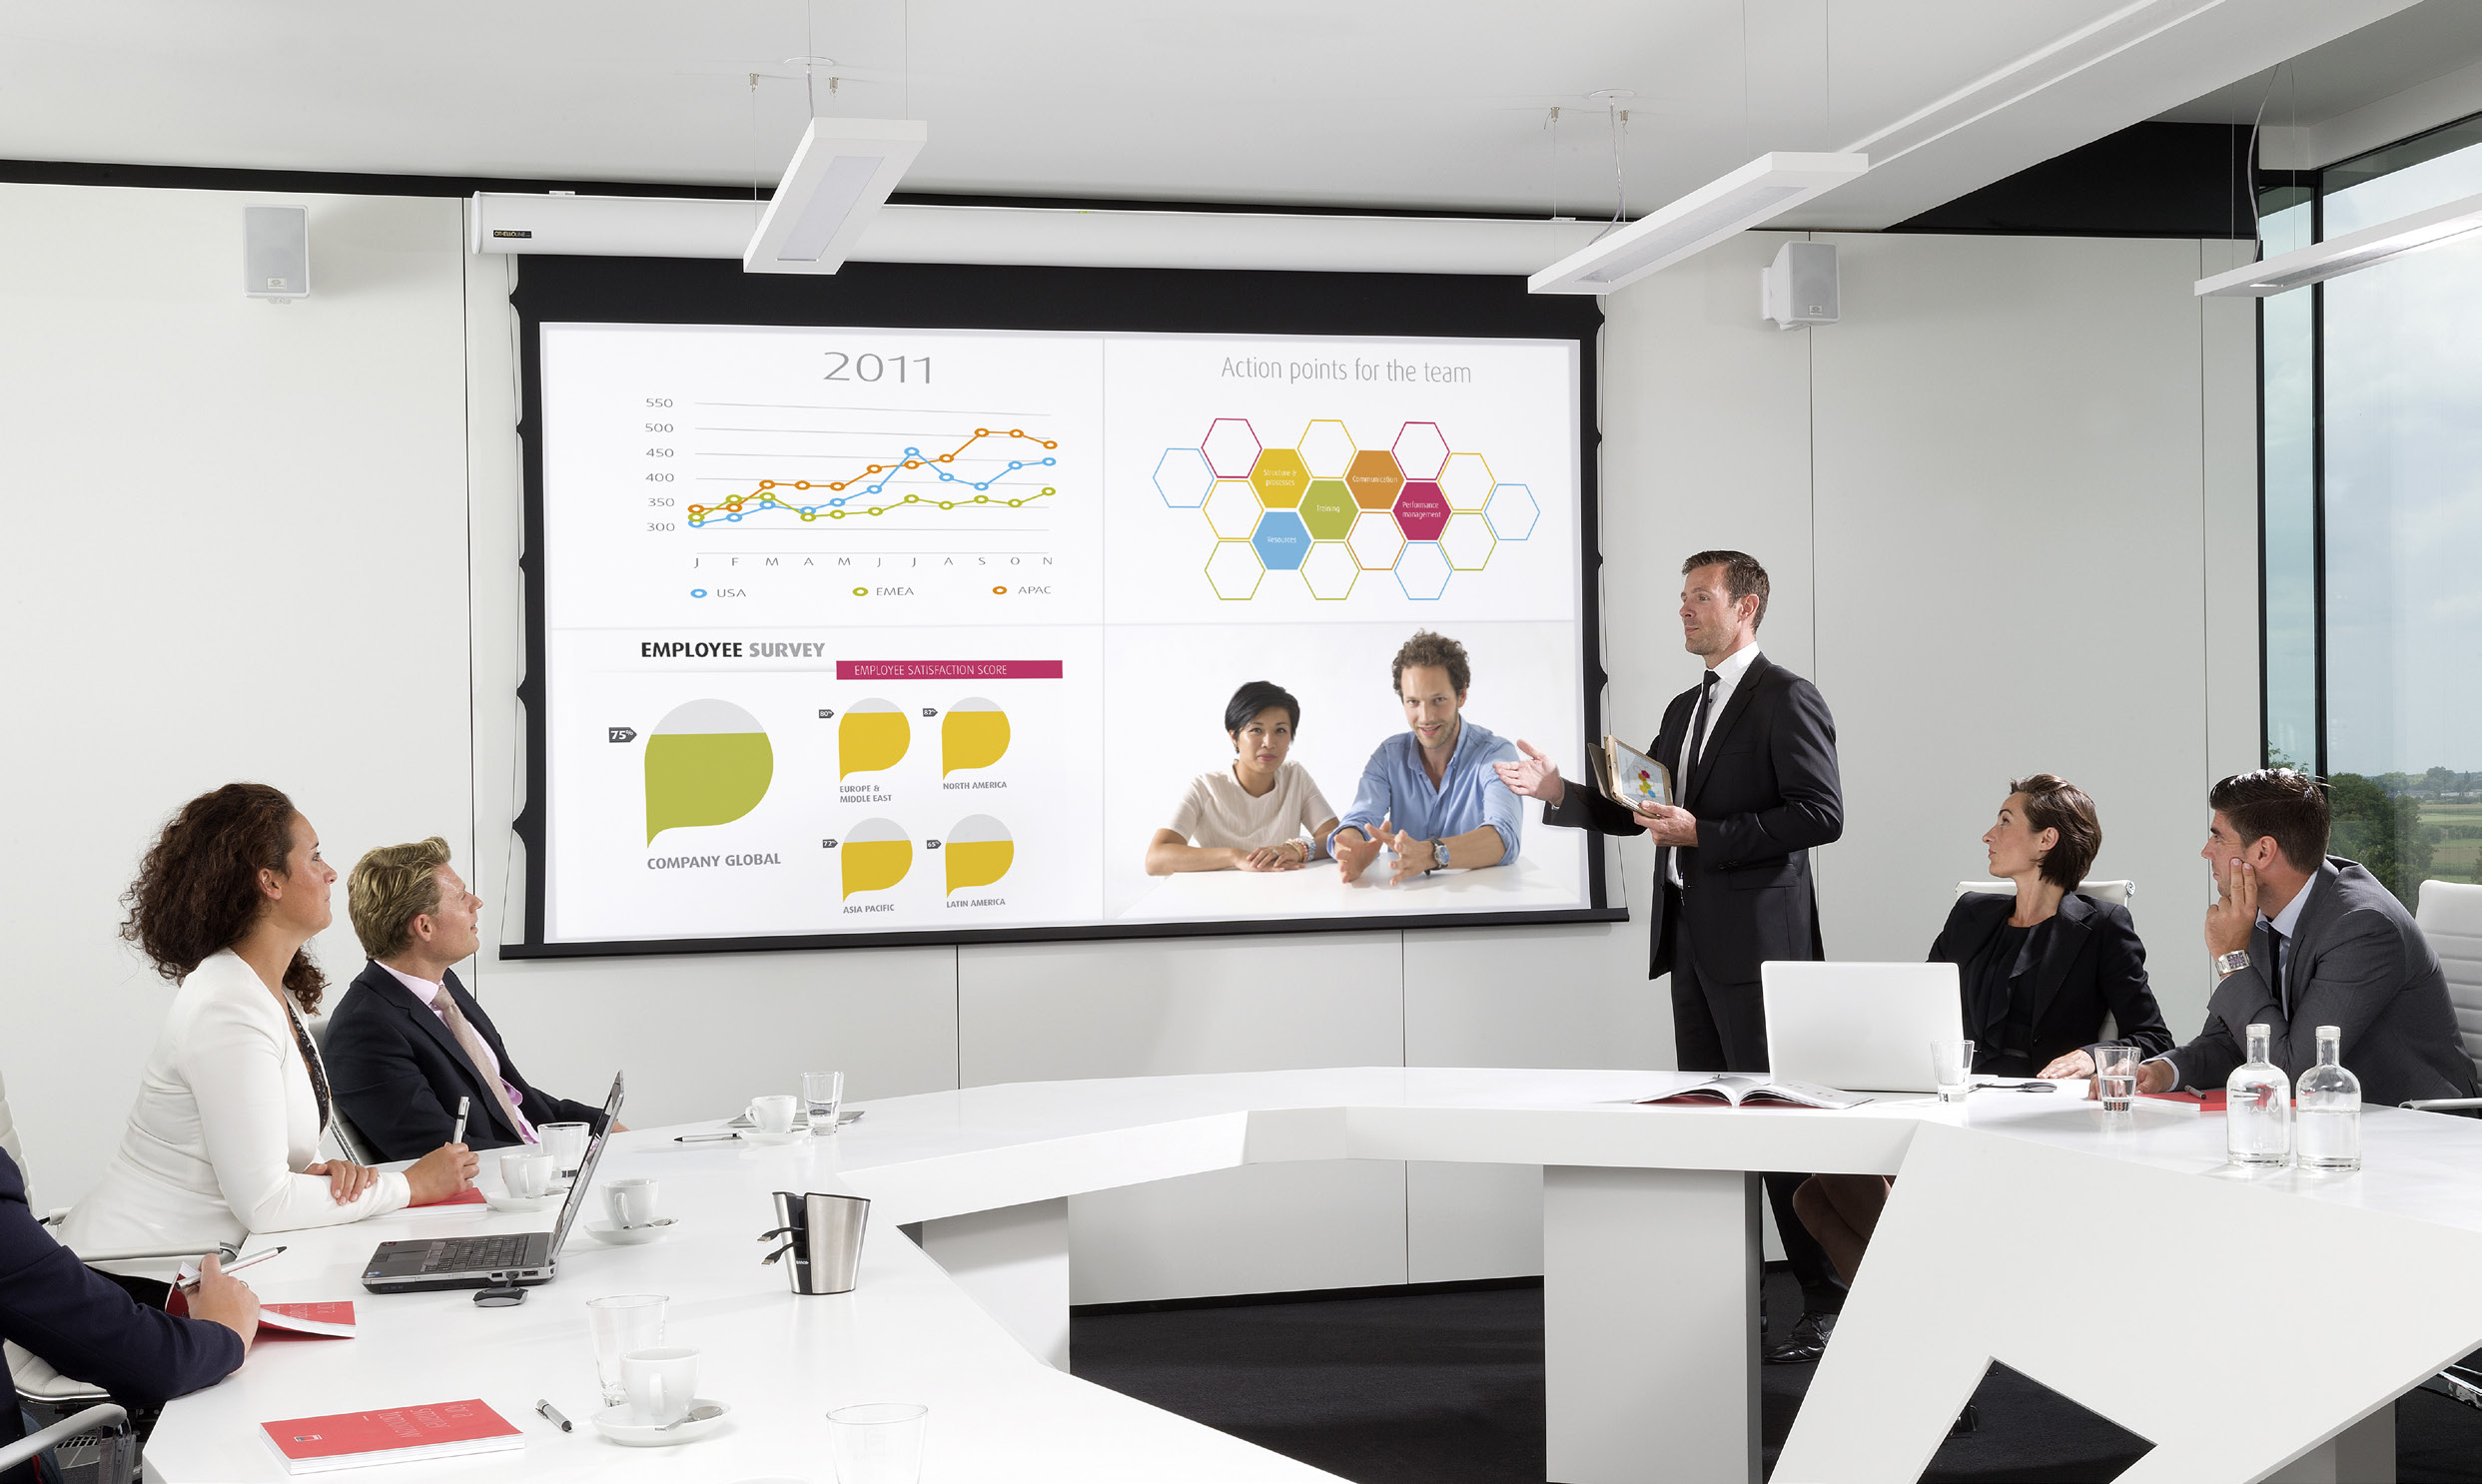 ClickShare wireless presentation and collaboration system boardroom